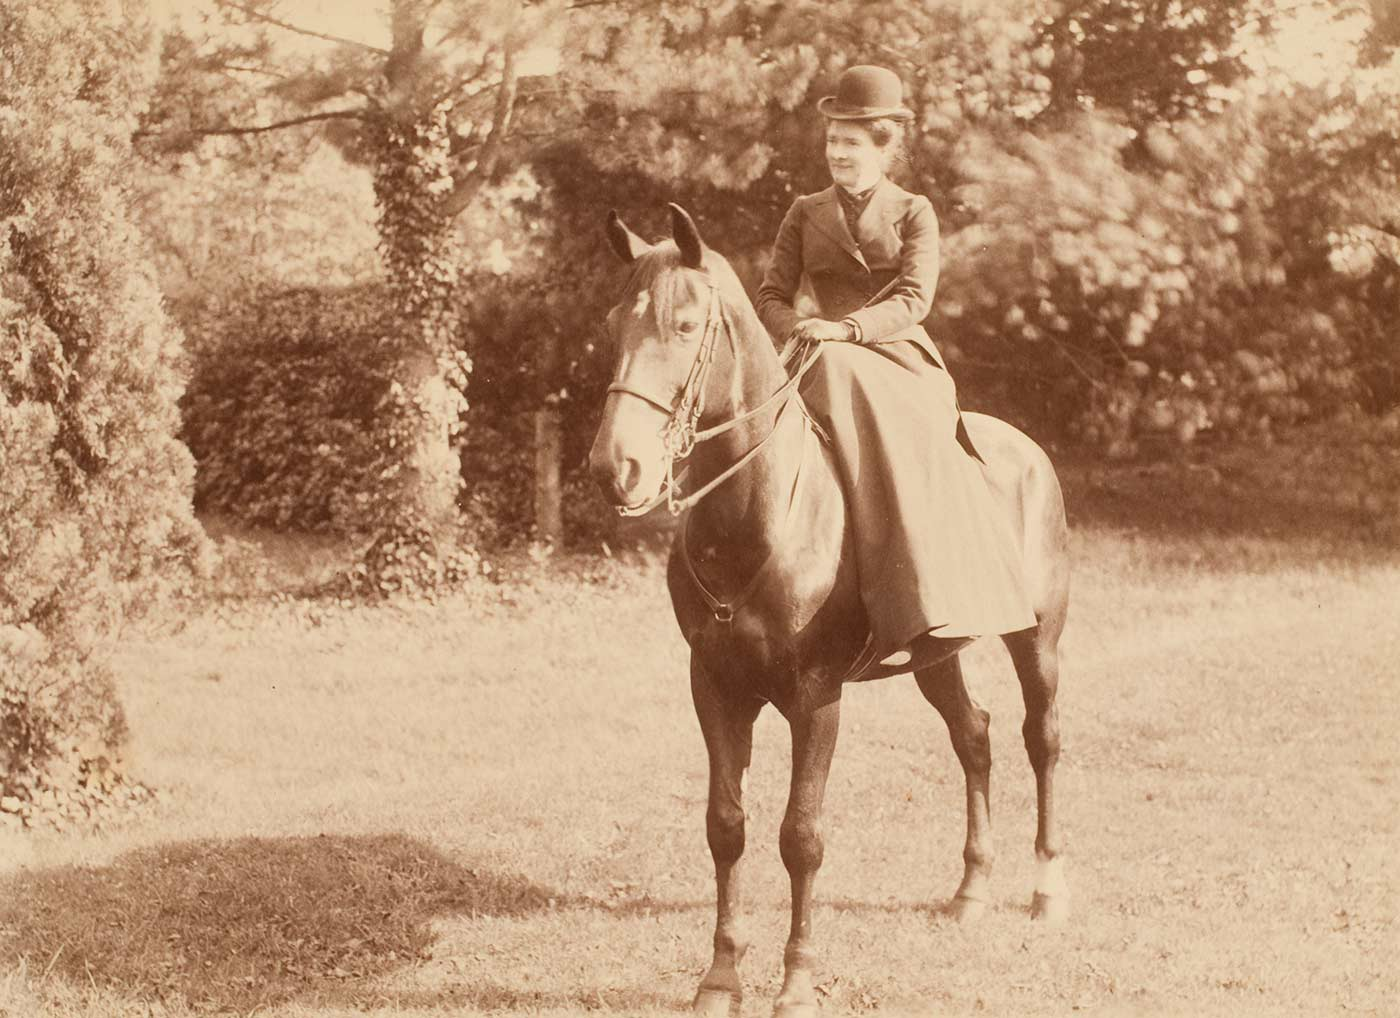 A black and white photograph that depicts Constance Faithfull sitting side-saddle on a horse.